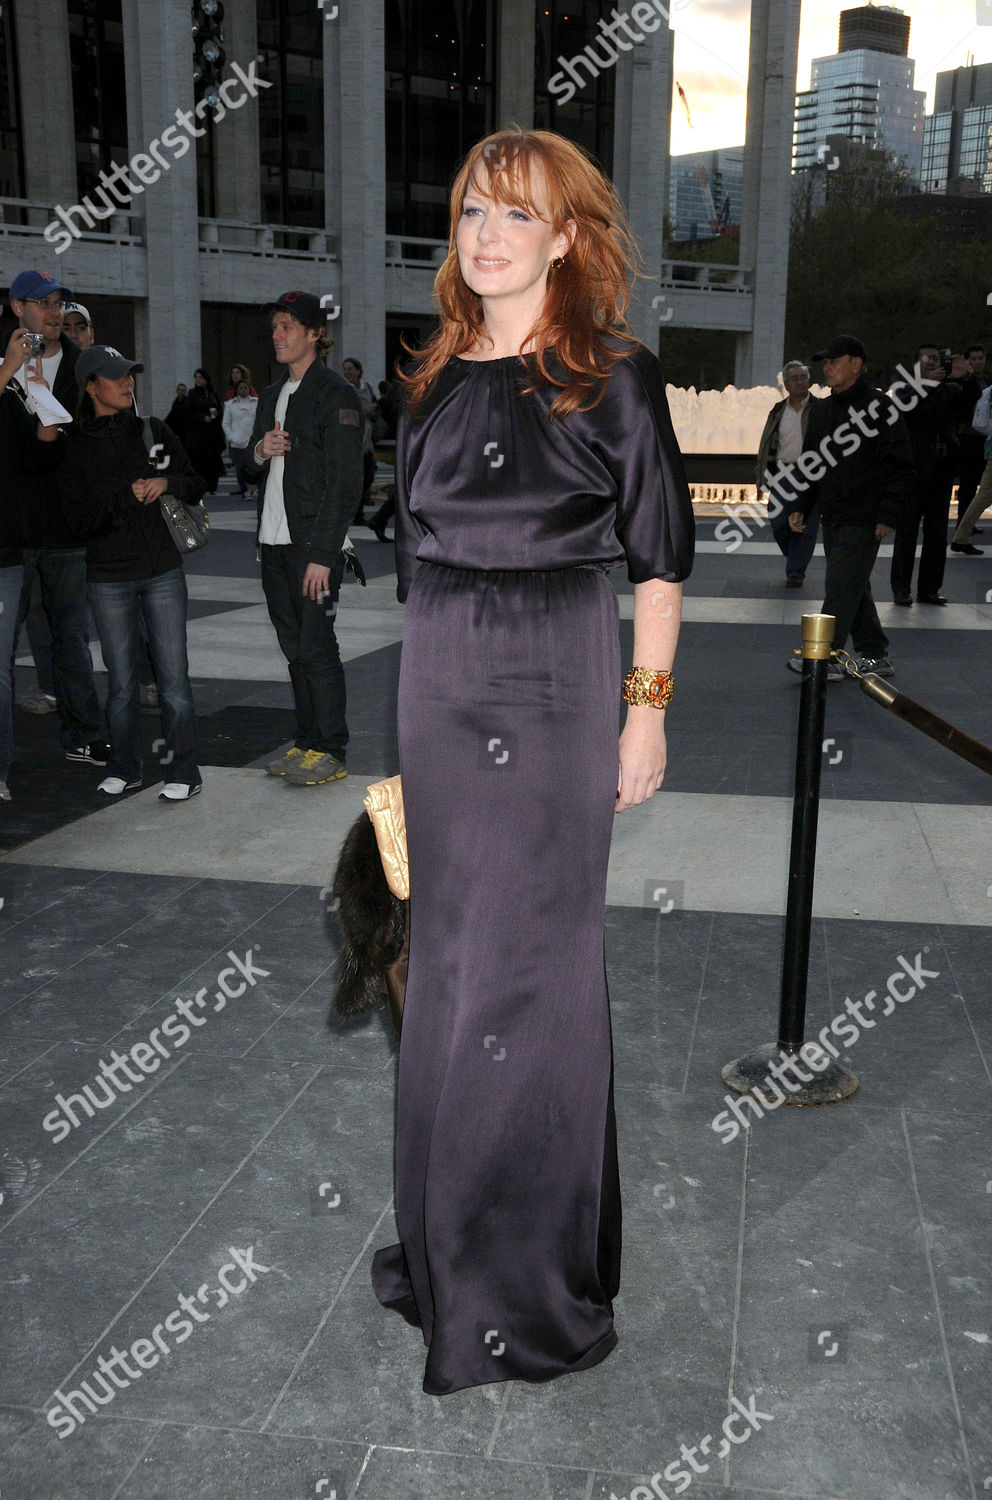 Stock photo of American Ballet Theater's 2009 Fall Gala at Avery Fisher Hall at Lincoln Center, New York, America - 07 Oct 2009